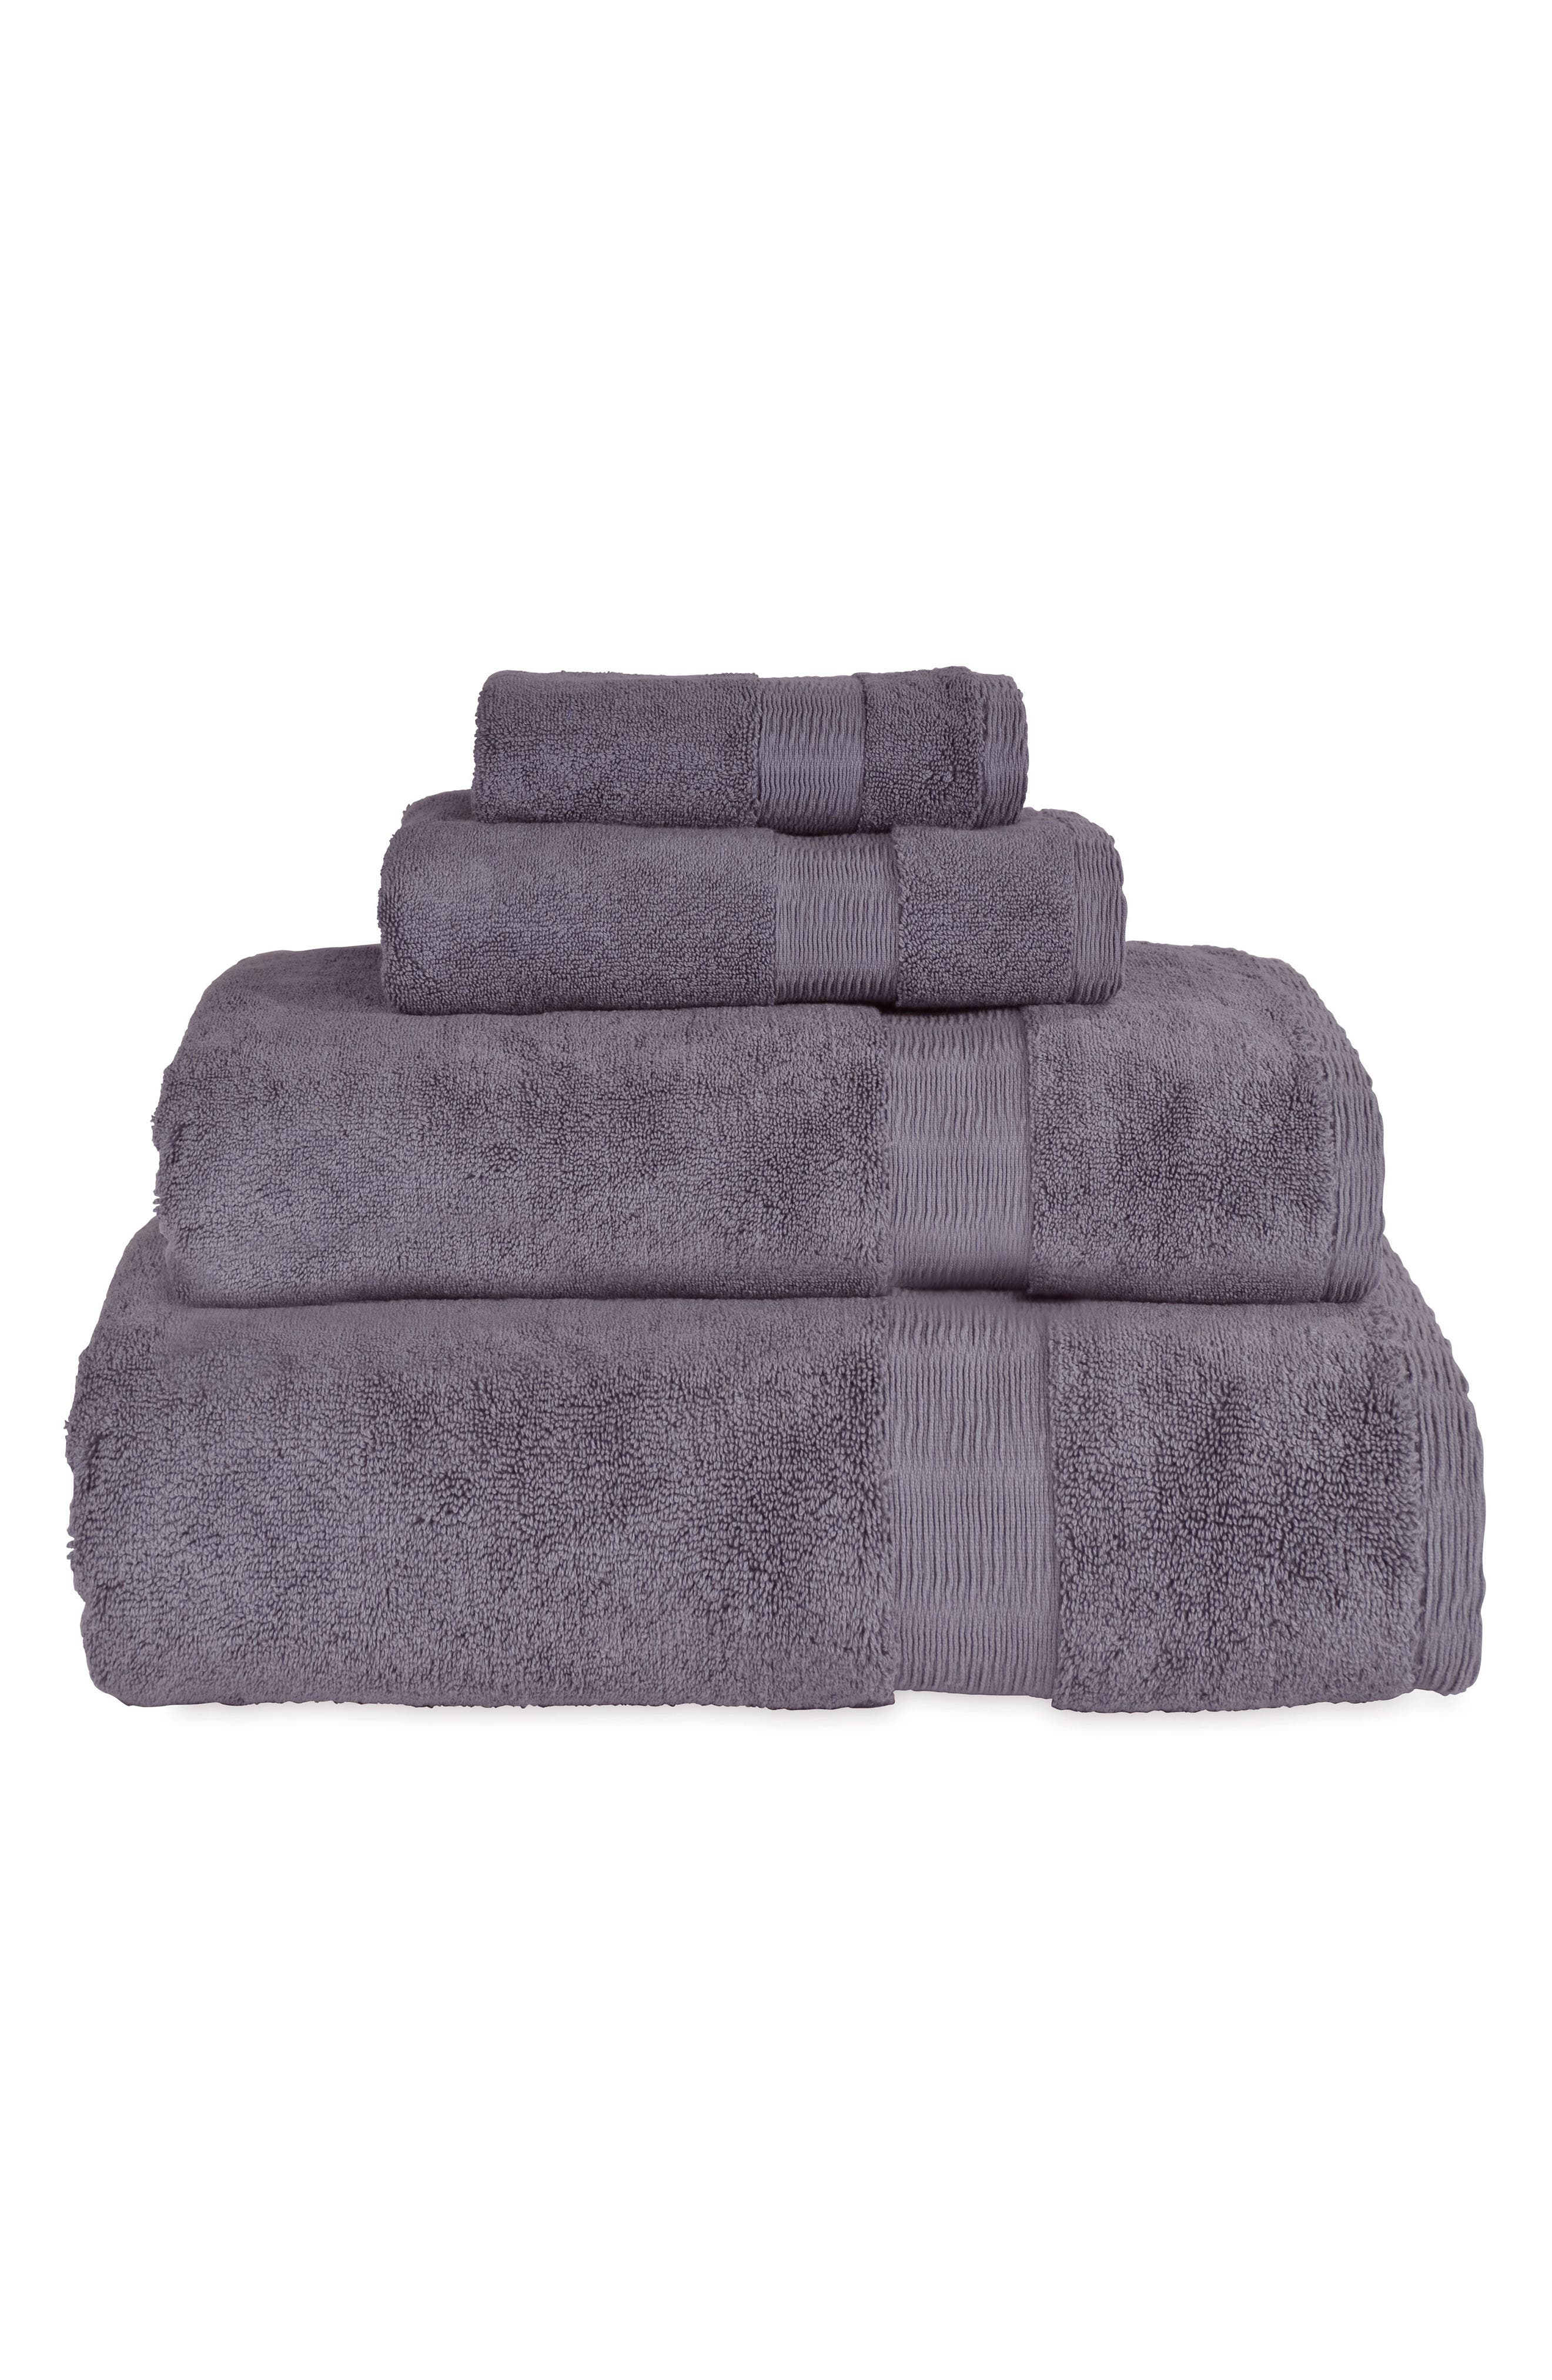 Mercer Hand Towel,                             Alternate thumbnail 2, color,                             Dusty Lavender